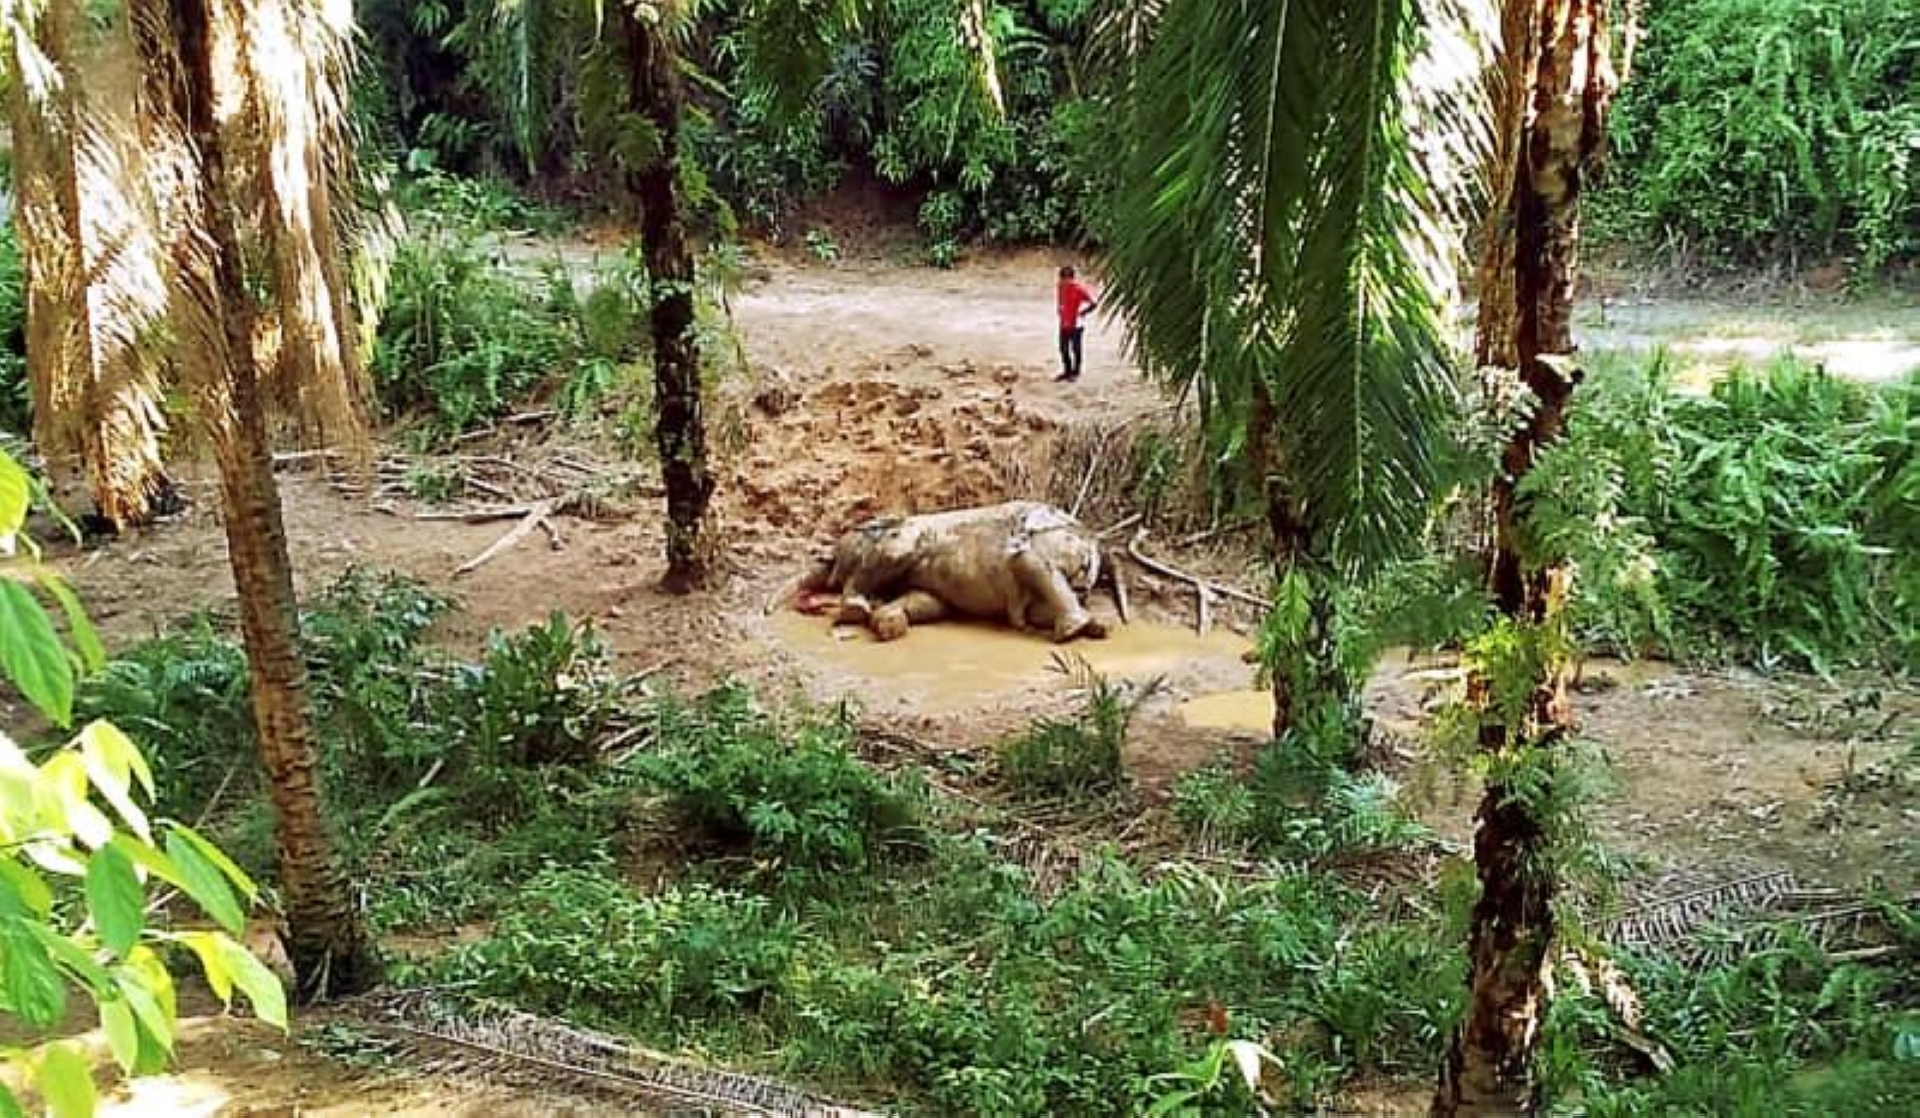 The elephant could have died about five days before the discovery at Ladang Bimbingan in Beluran.